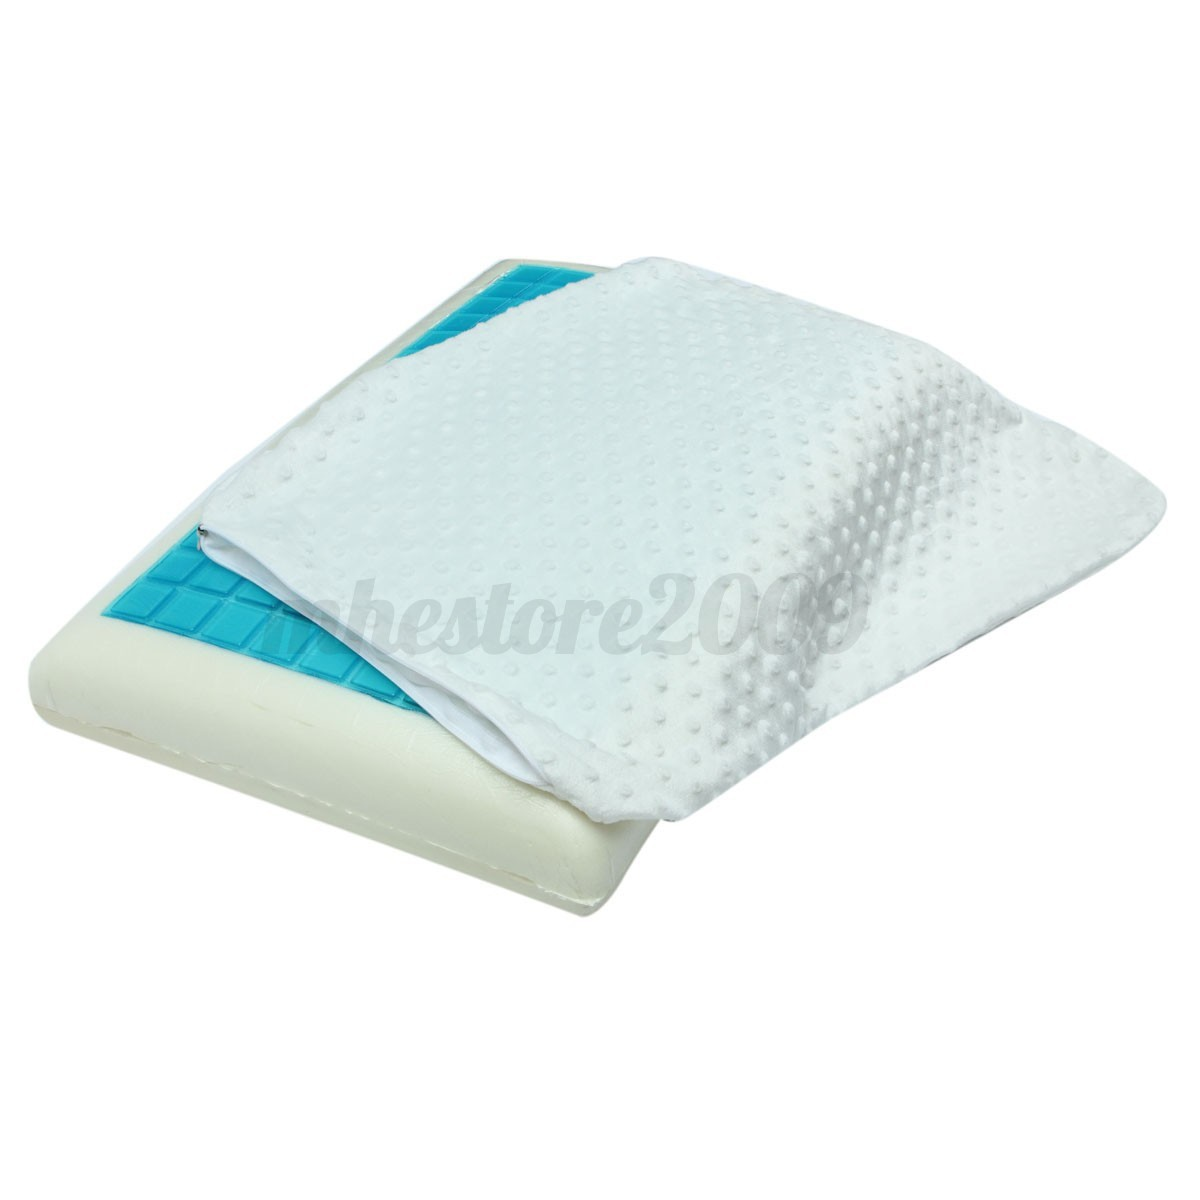 collection of orthopedic bed pillows memory foam pillow orth